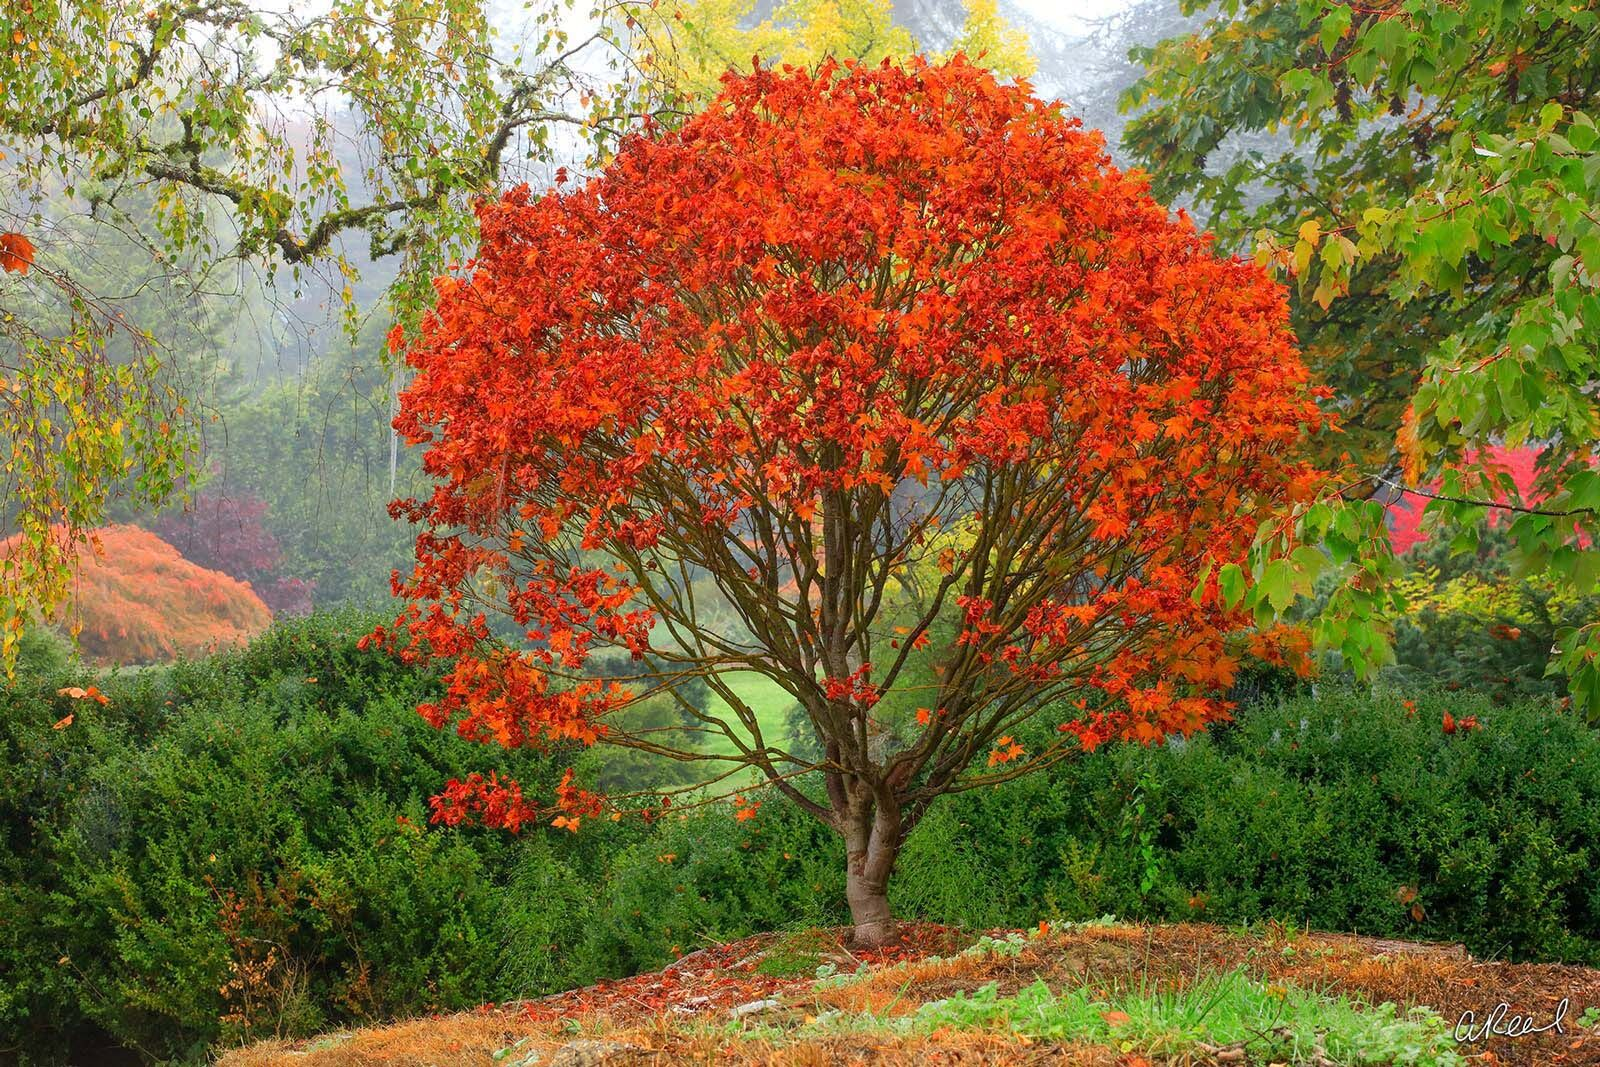 The Burning Bush | Short Tree With Bright Red Leaves on a Hill During a Foggy Morning | Fine Art Photography for Sale by Aaron Reed